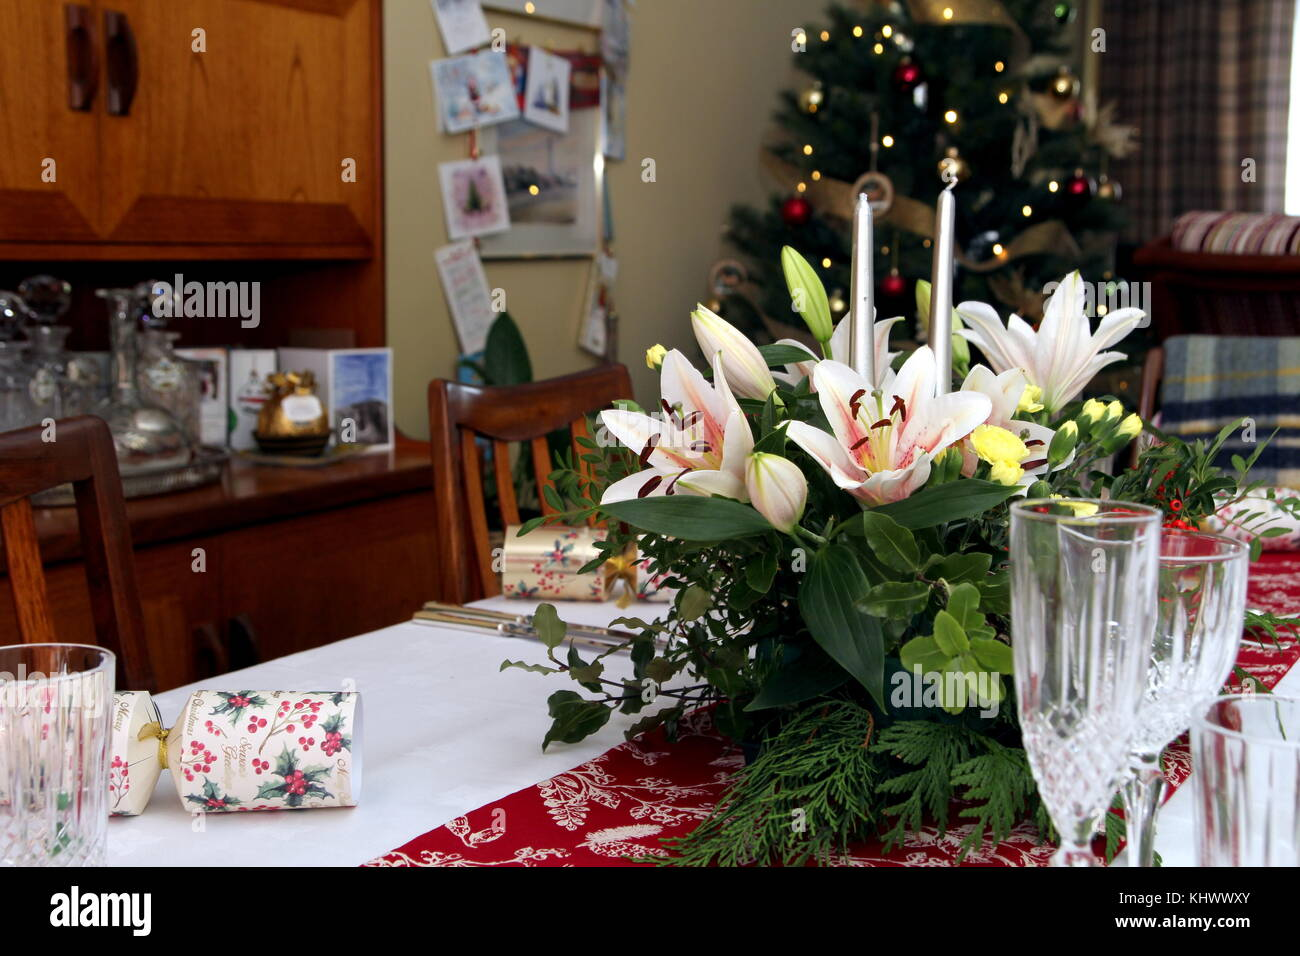 Beautiful floral centerpiece with candles on a festive dining table laid ready for Christmas Dinner in a traditional Stock Photo